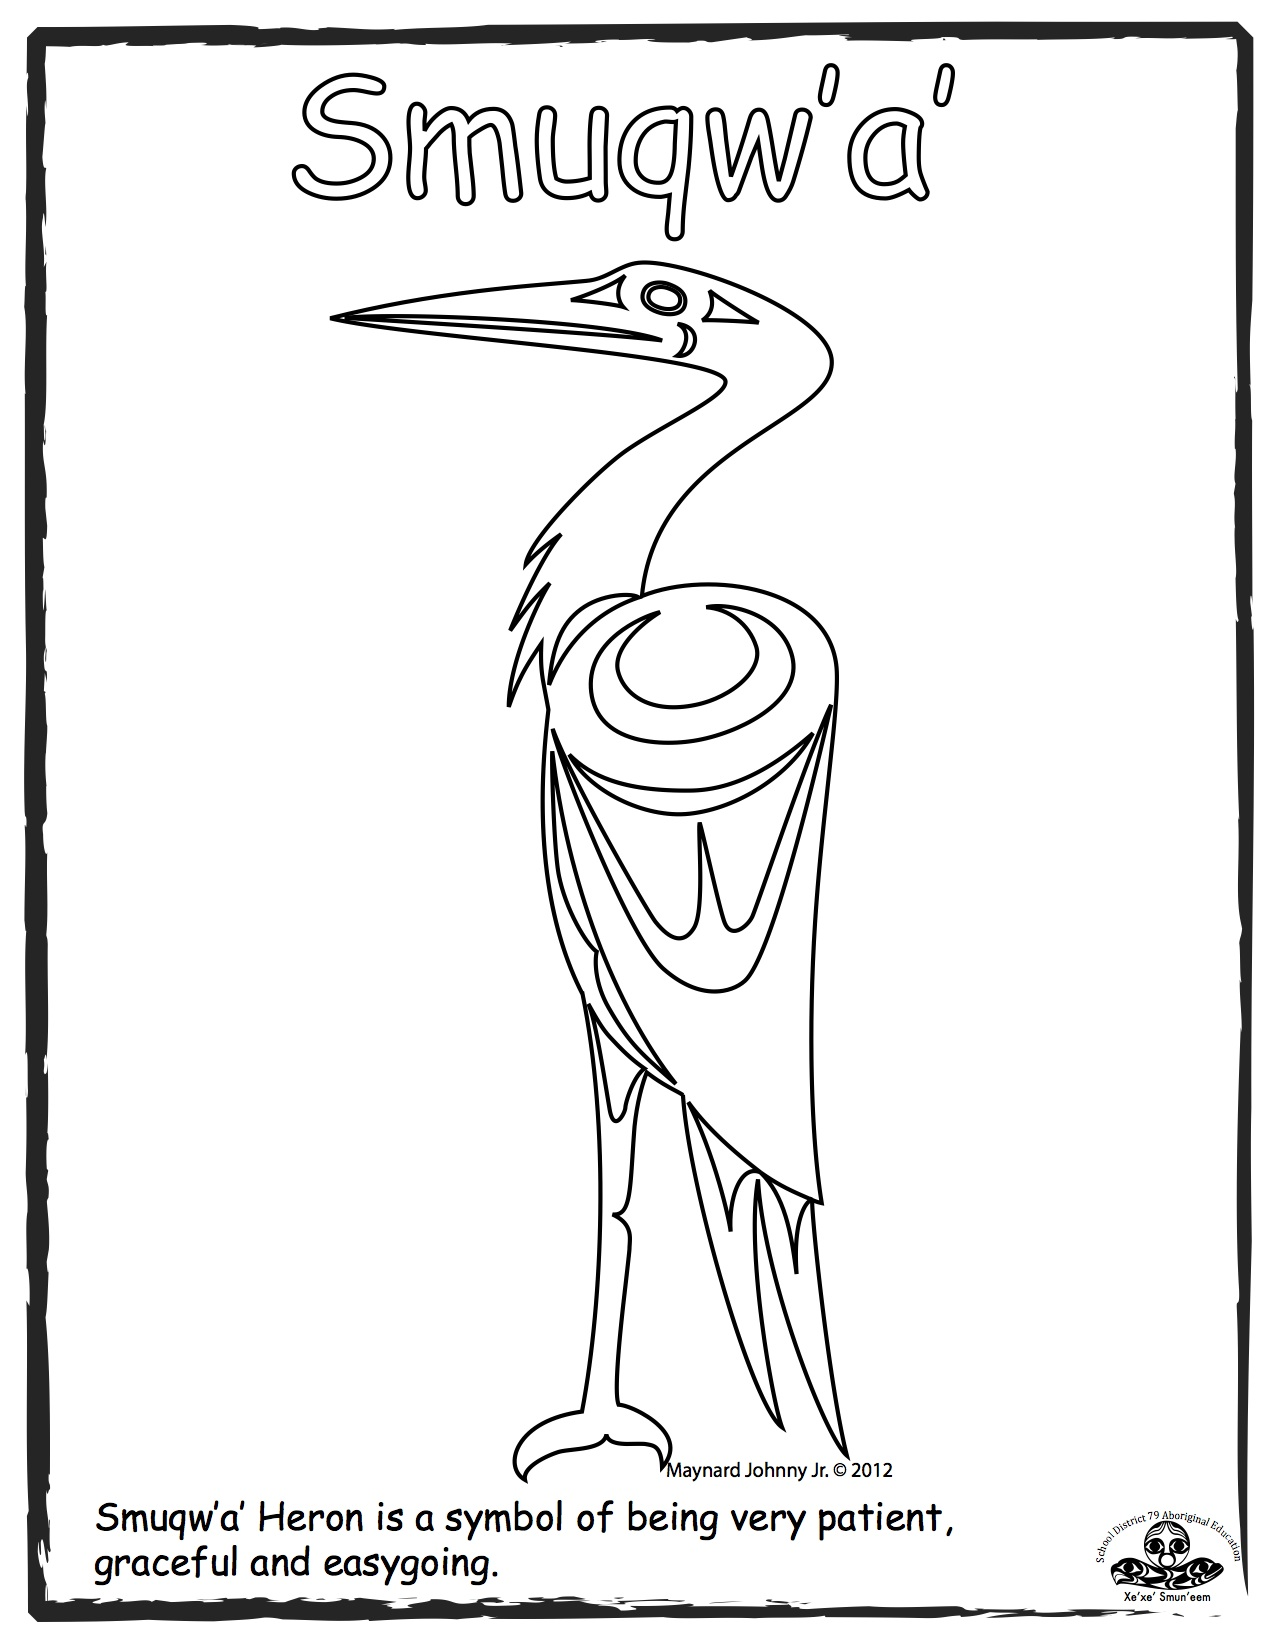 heron-smuqwa-outline